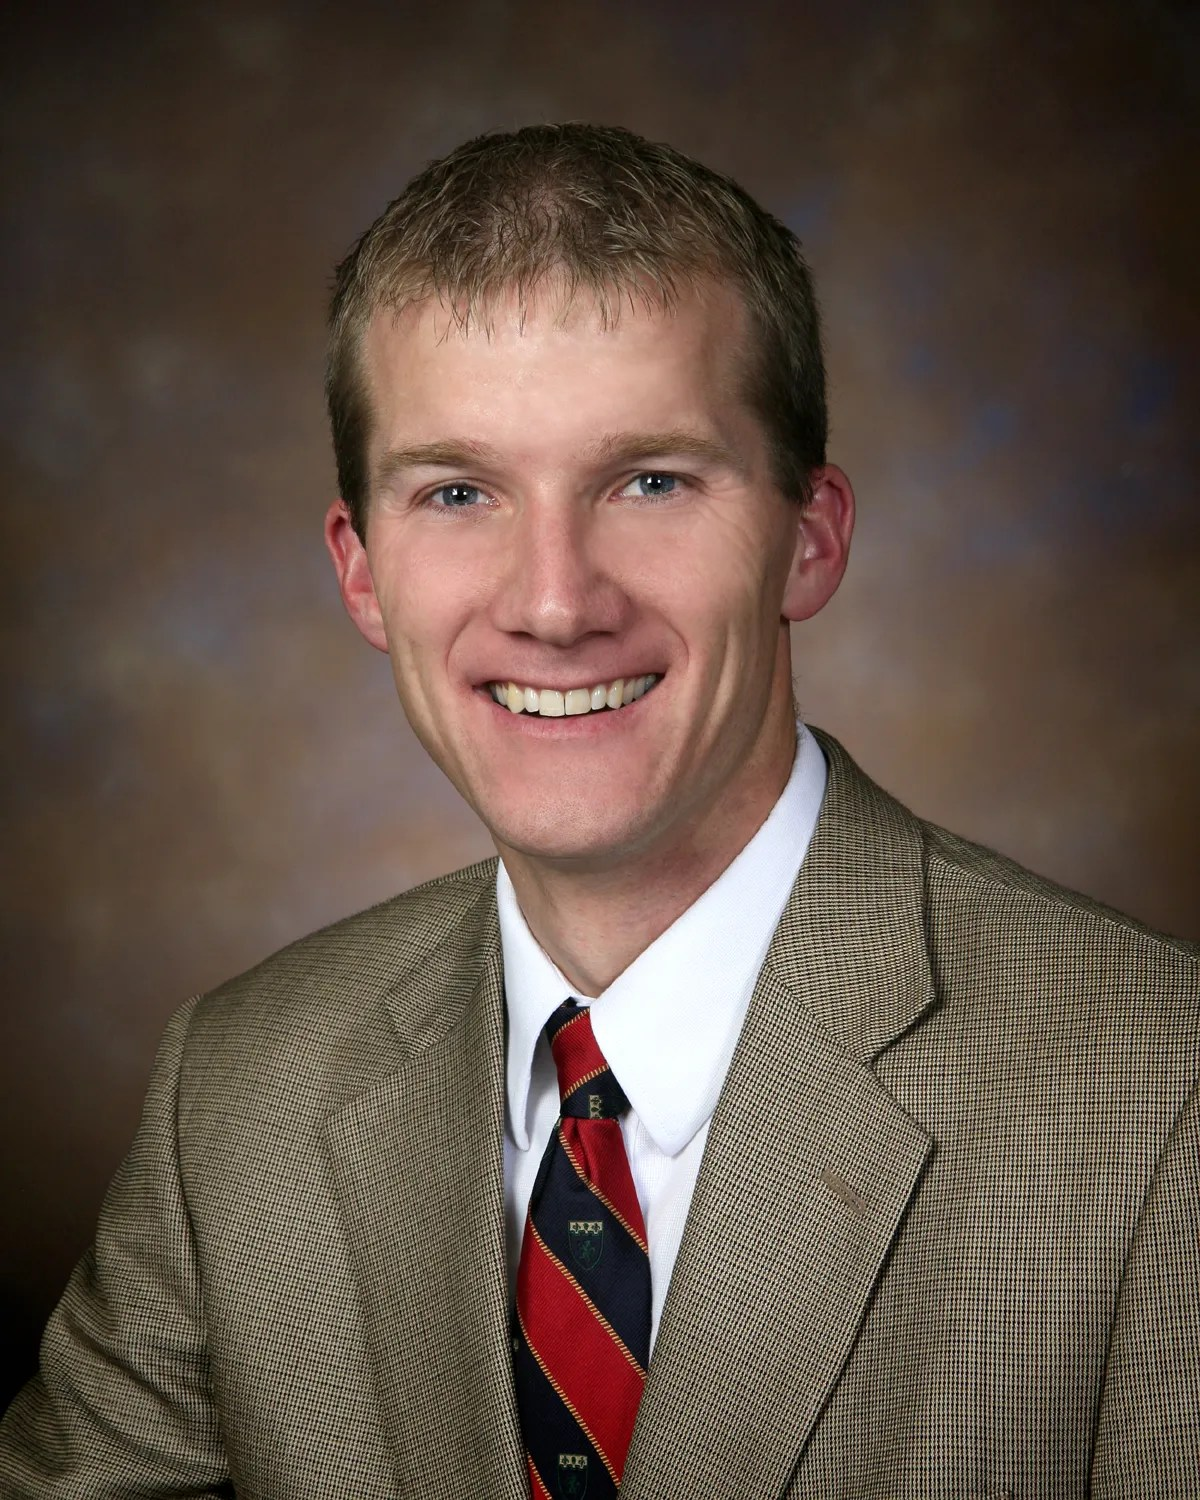 Dr. Christian Millward, a physician based in St. George, specializes in sports medicine.